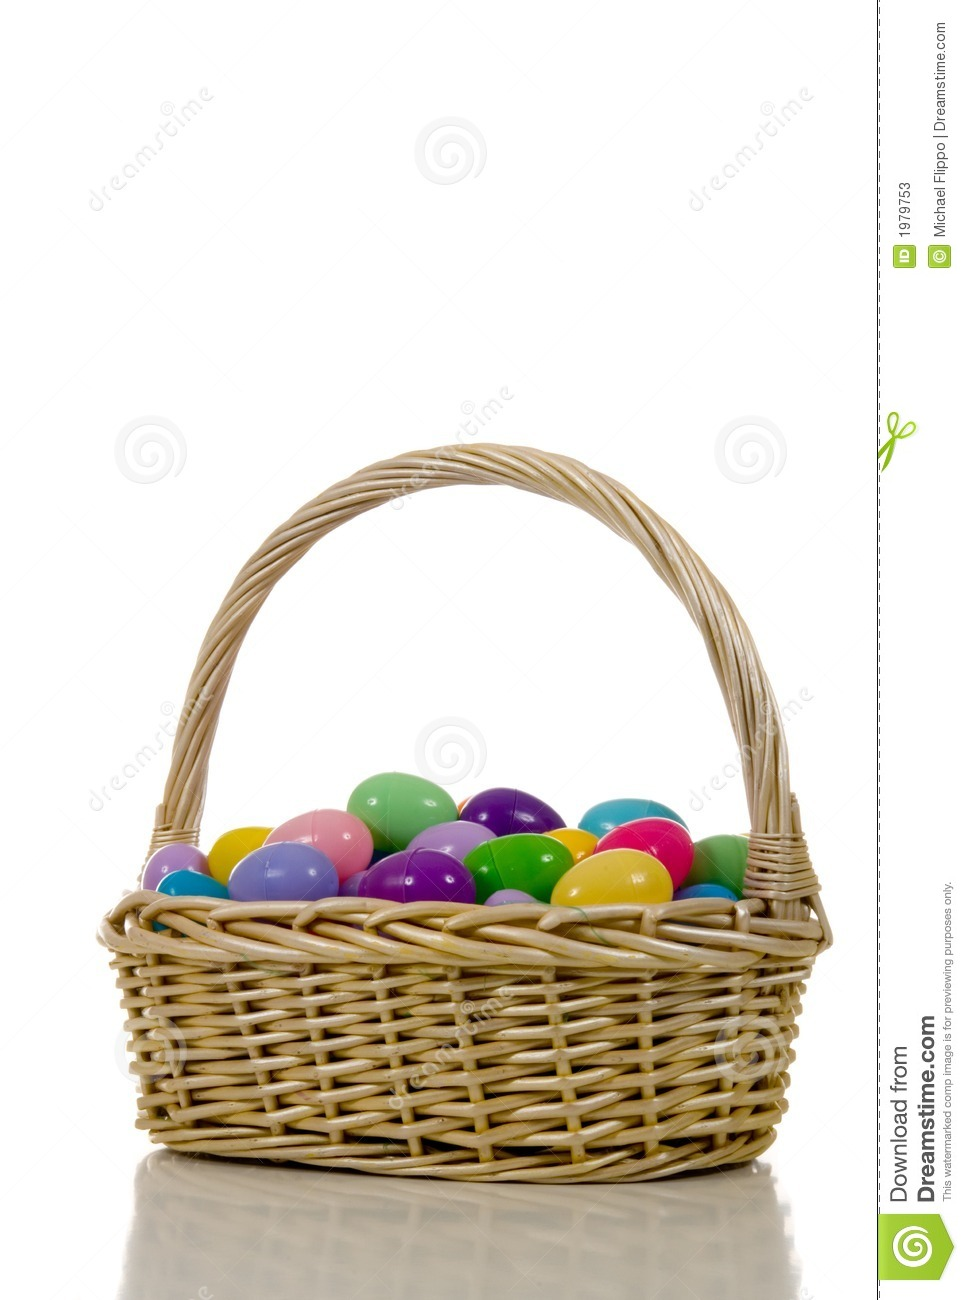 Easter Egg Basket With Plastic Multicolored Eggs